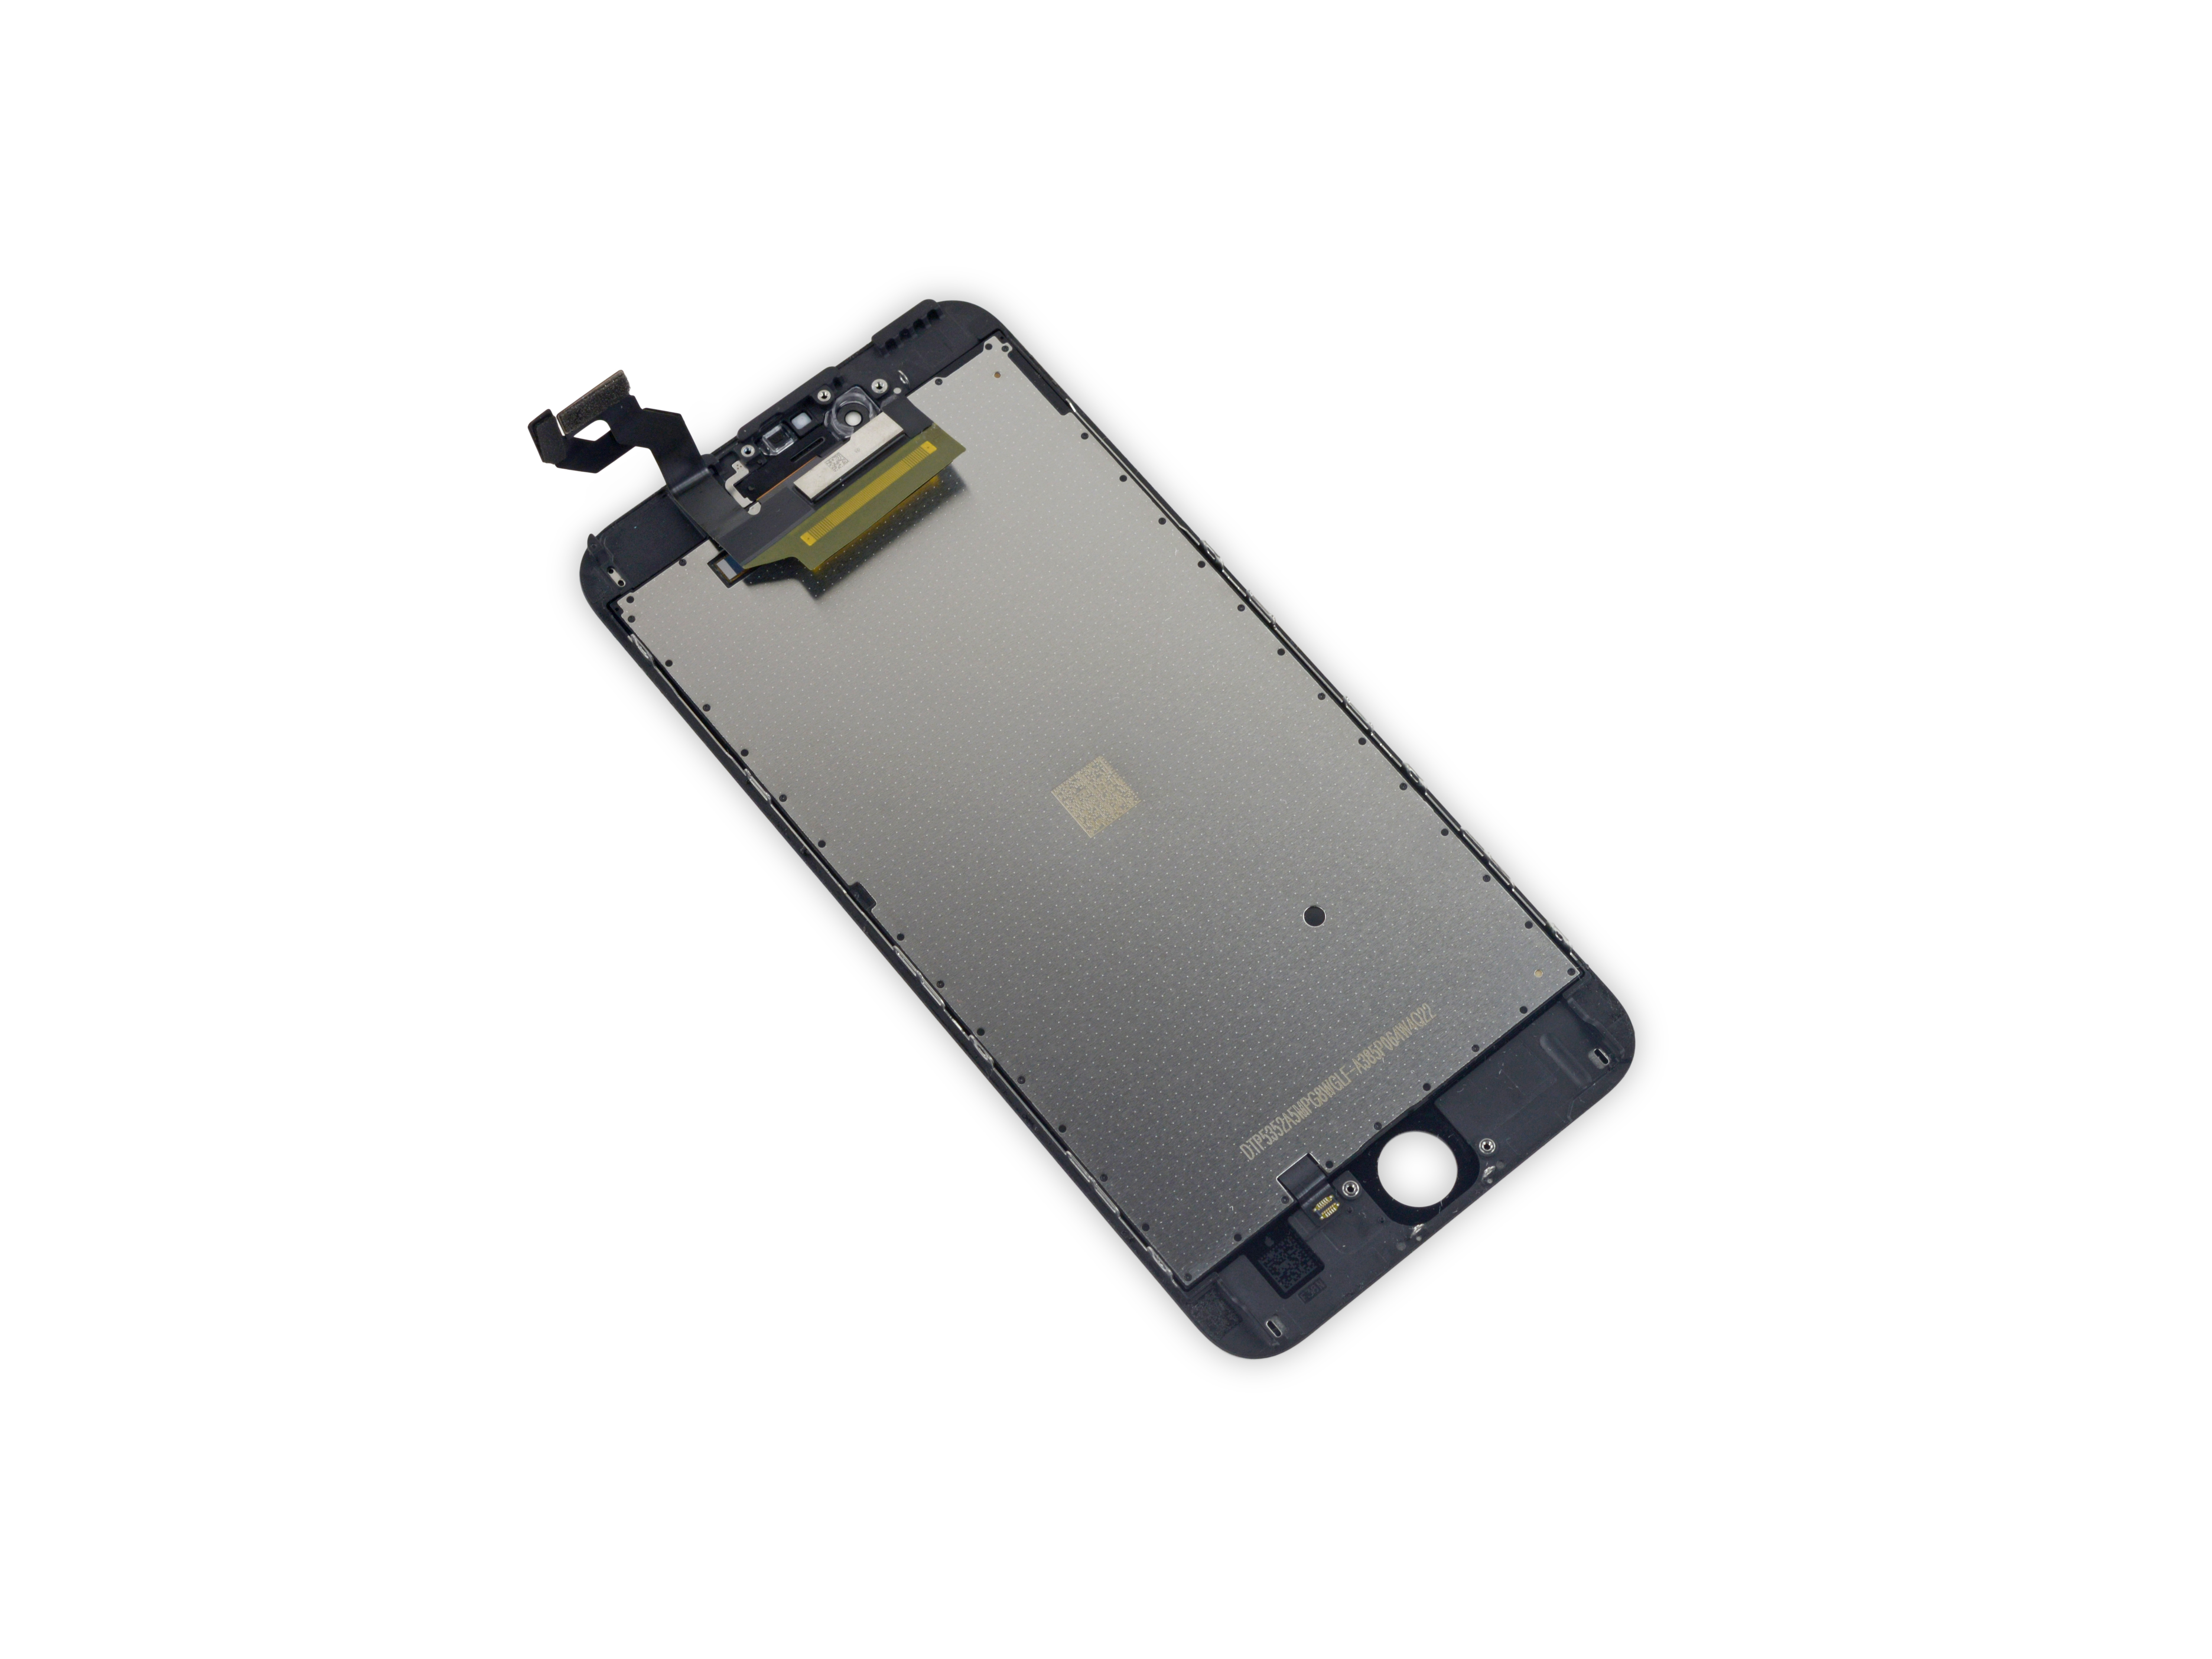 iPhone 6s Plus Front Panel Replacement - iFixit